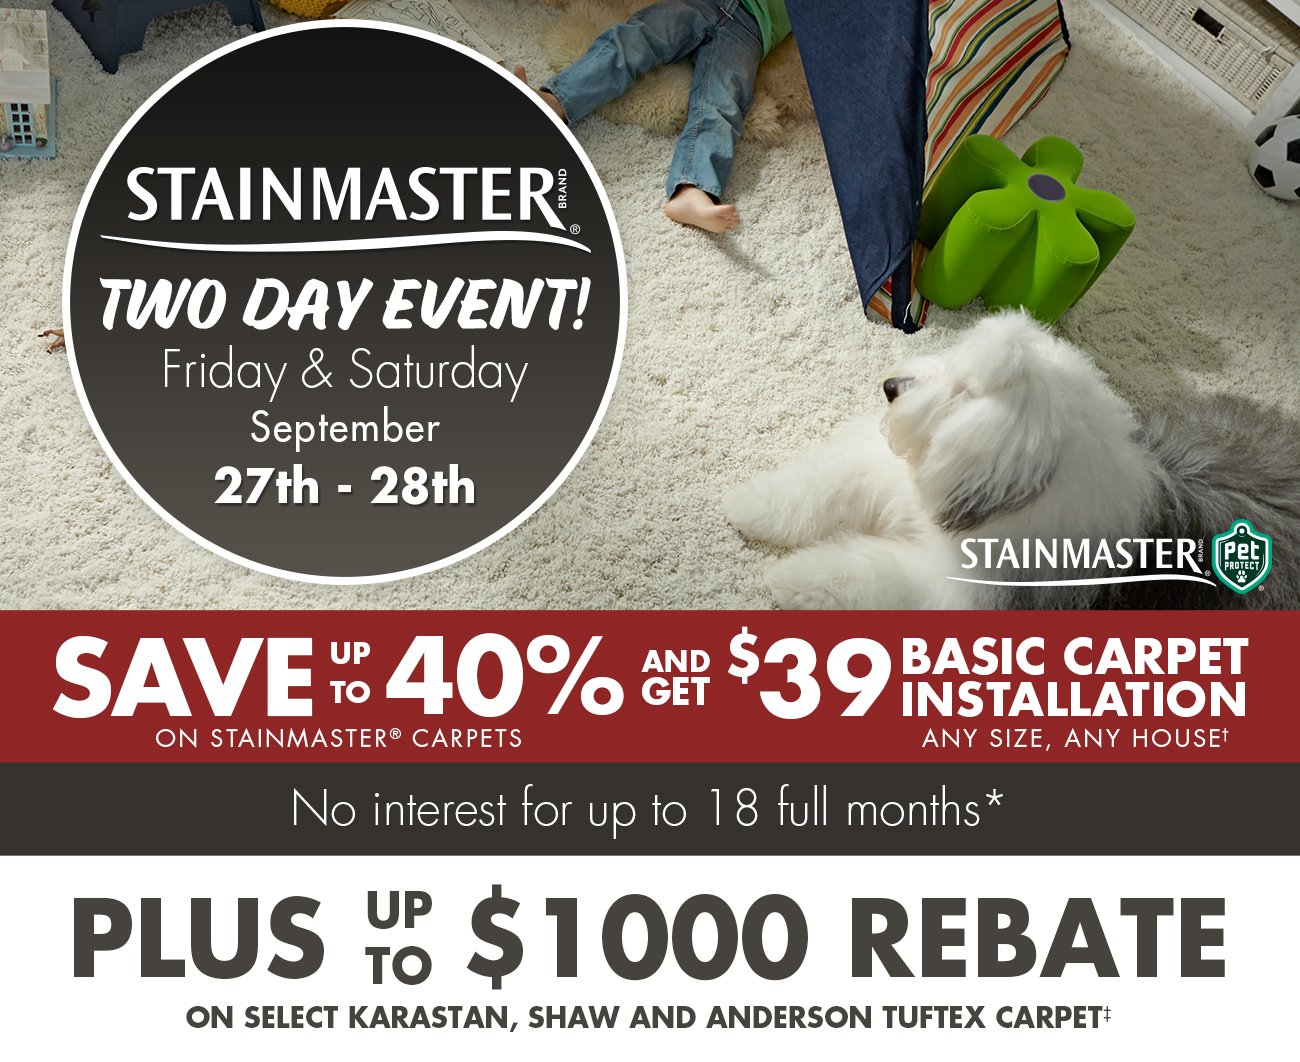 Stainmaster Event